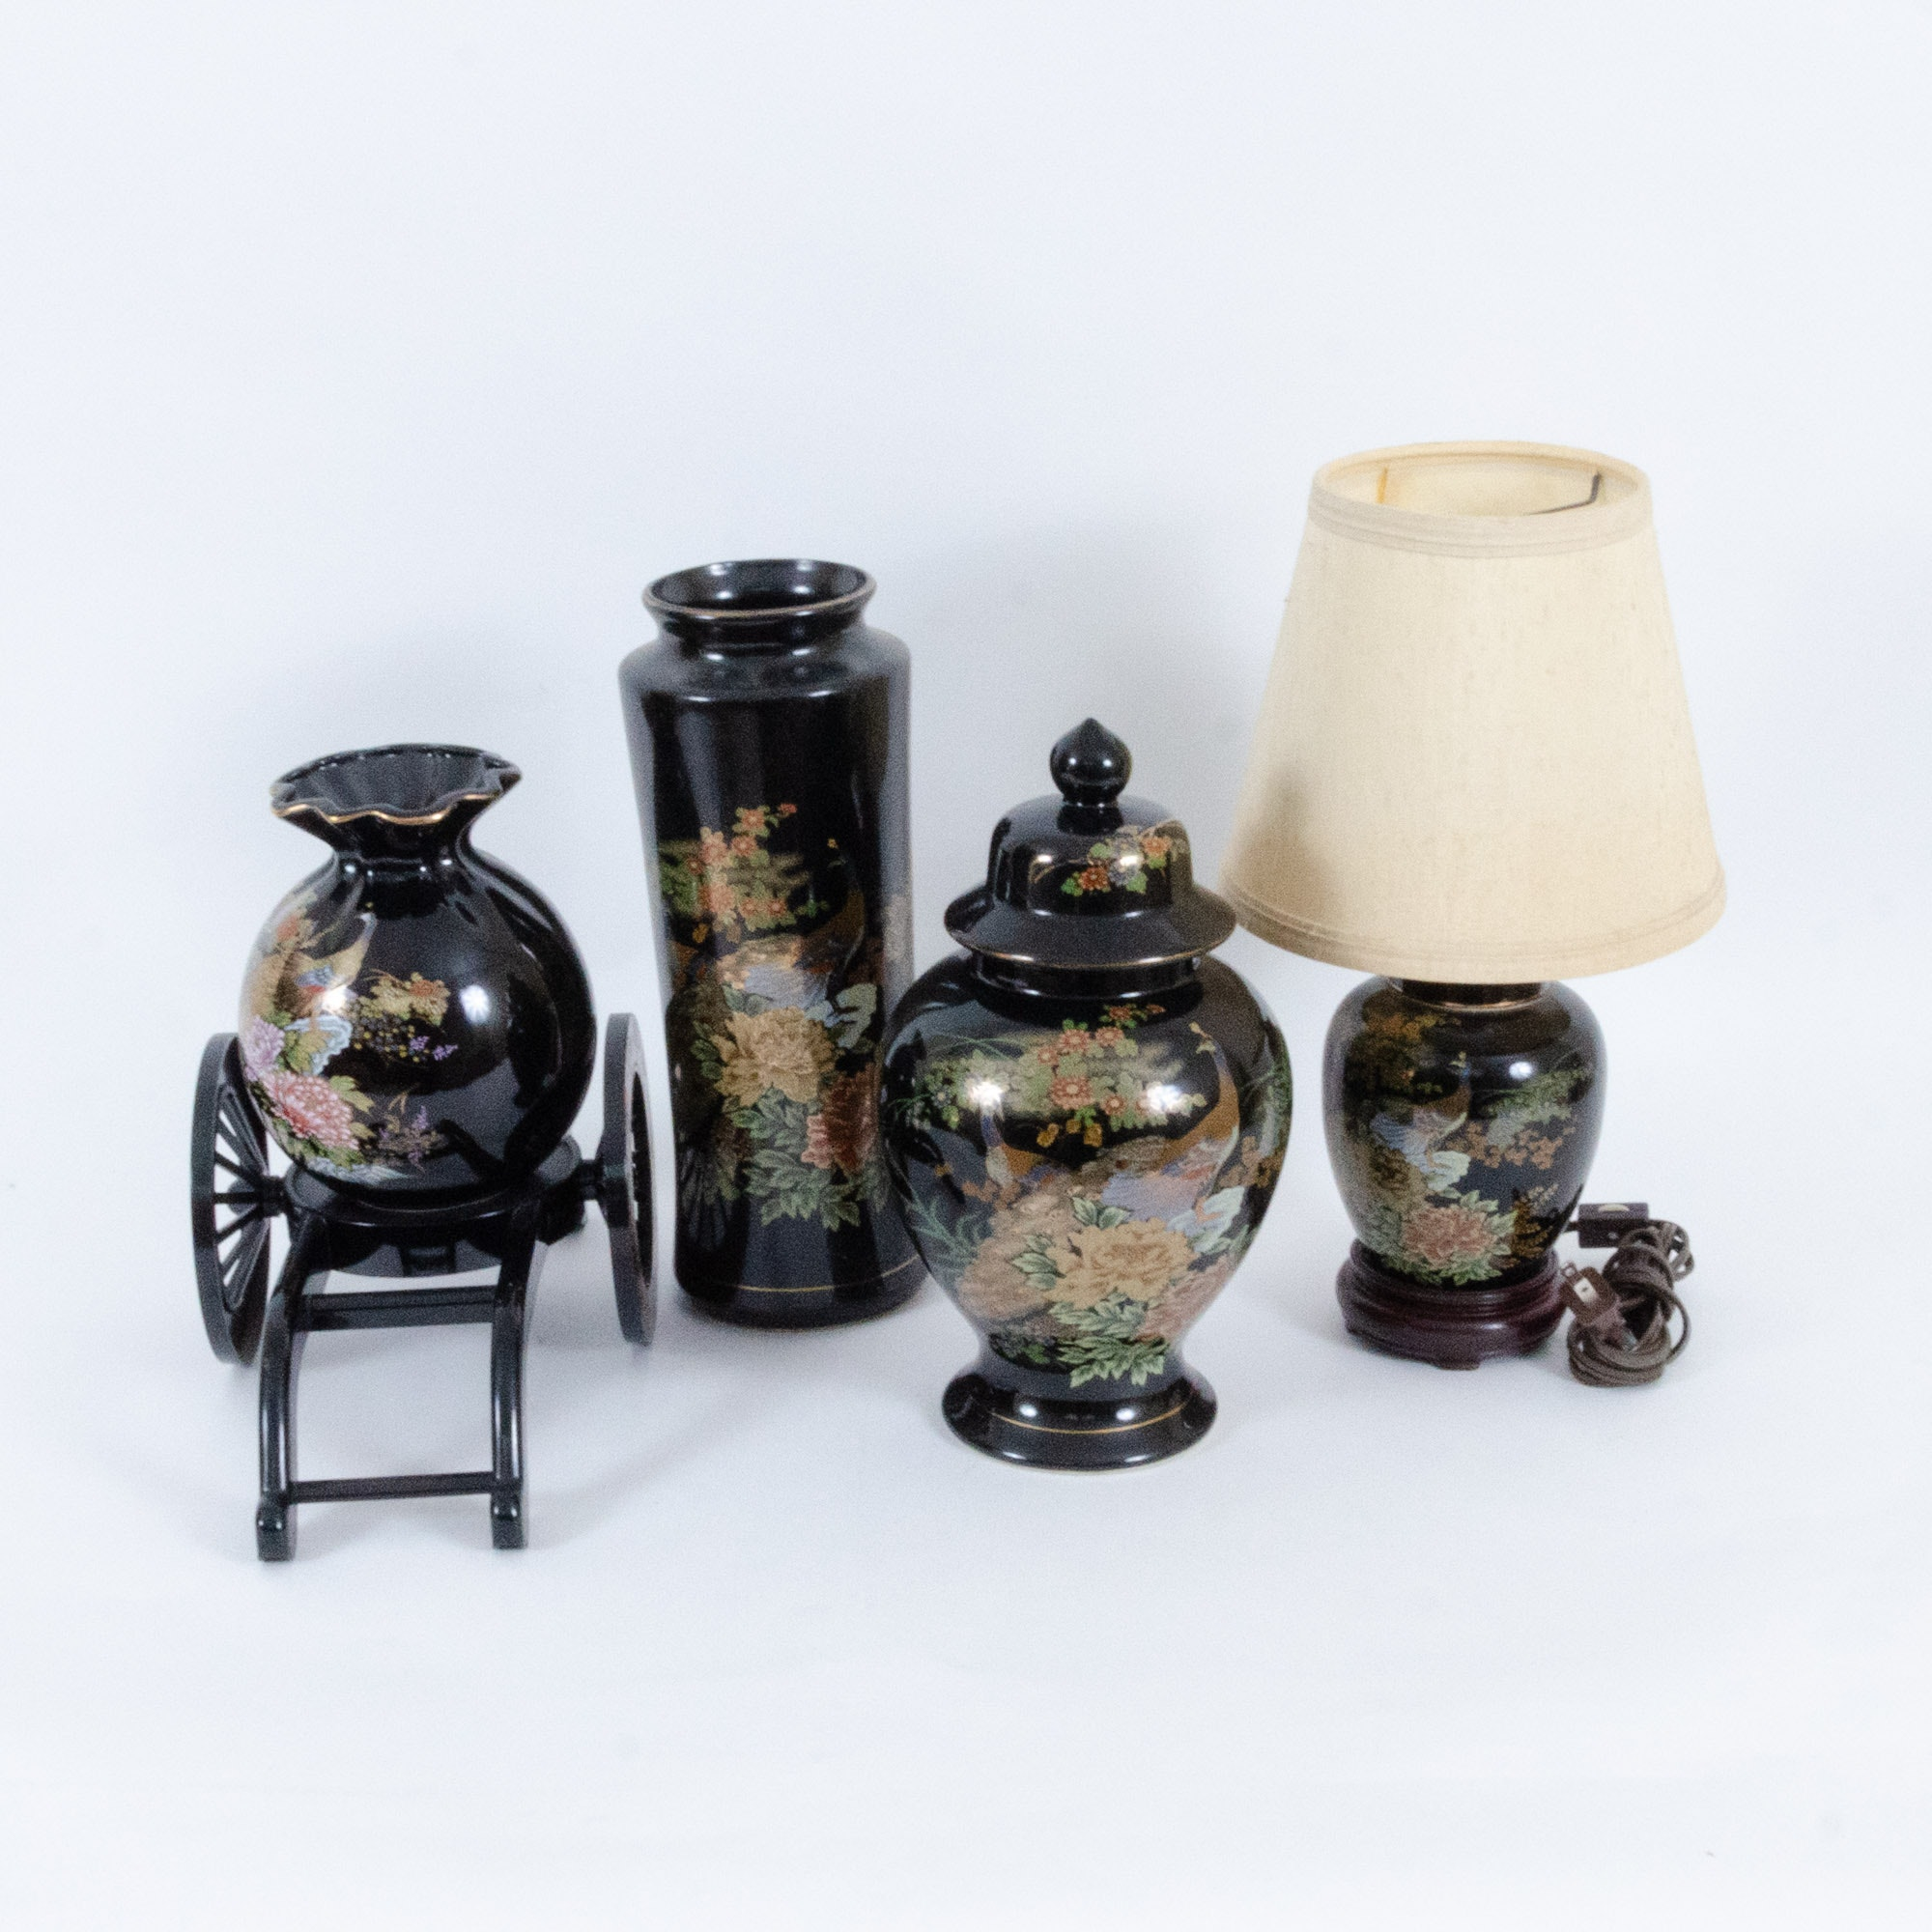 Japanese Porcelain Lamp, Ginger Jar, and Vases